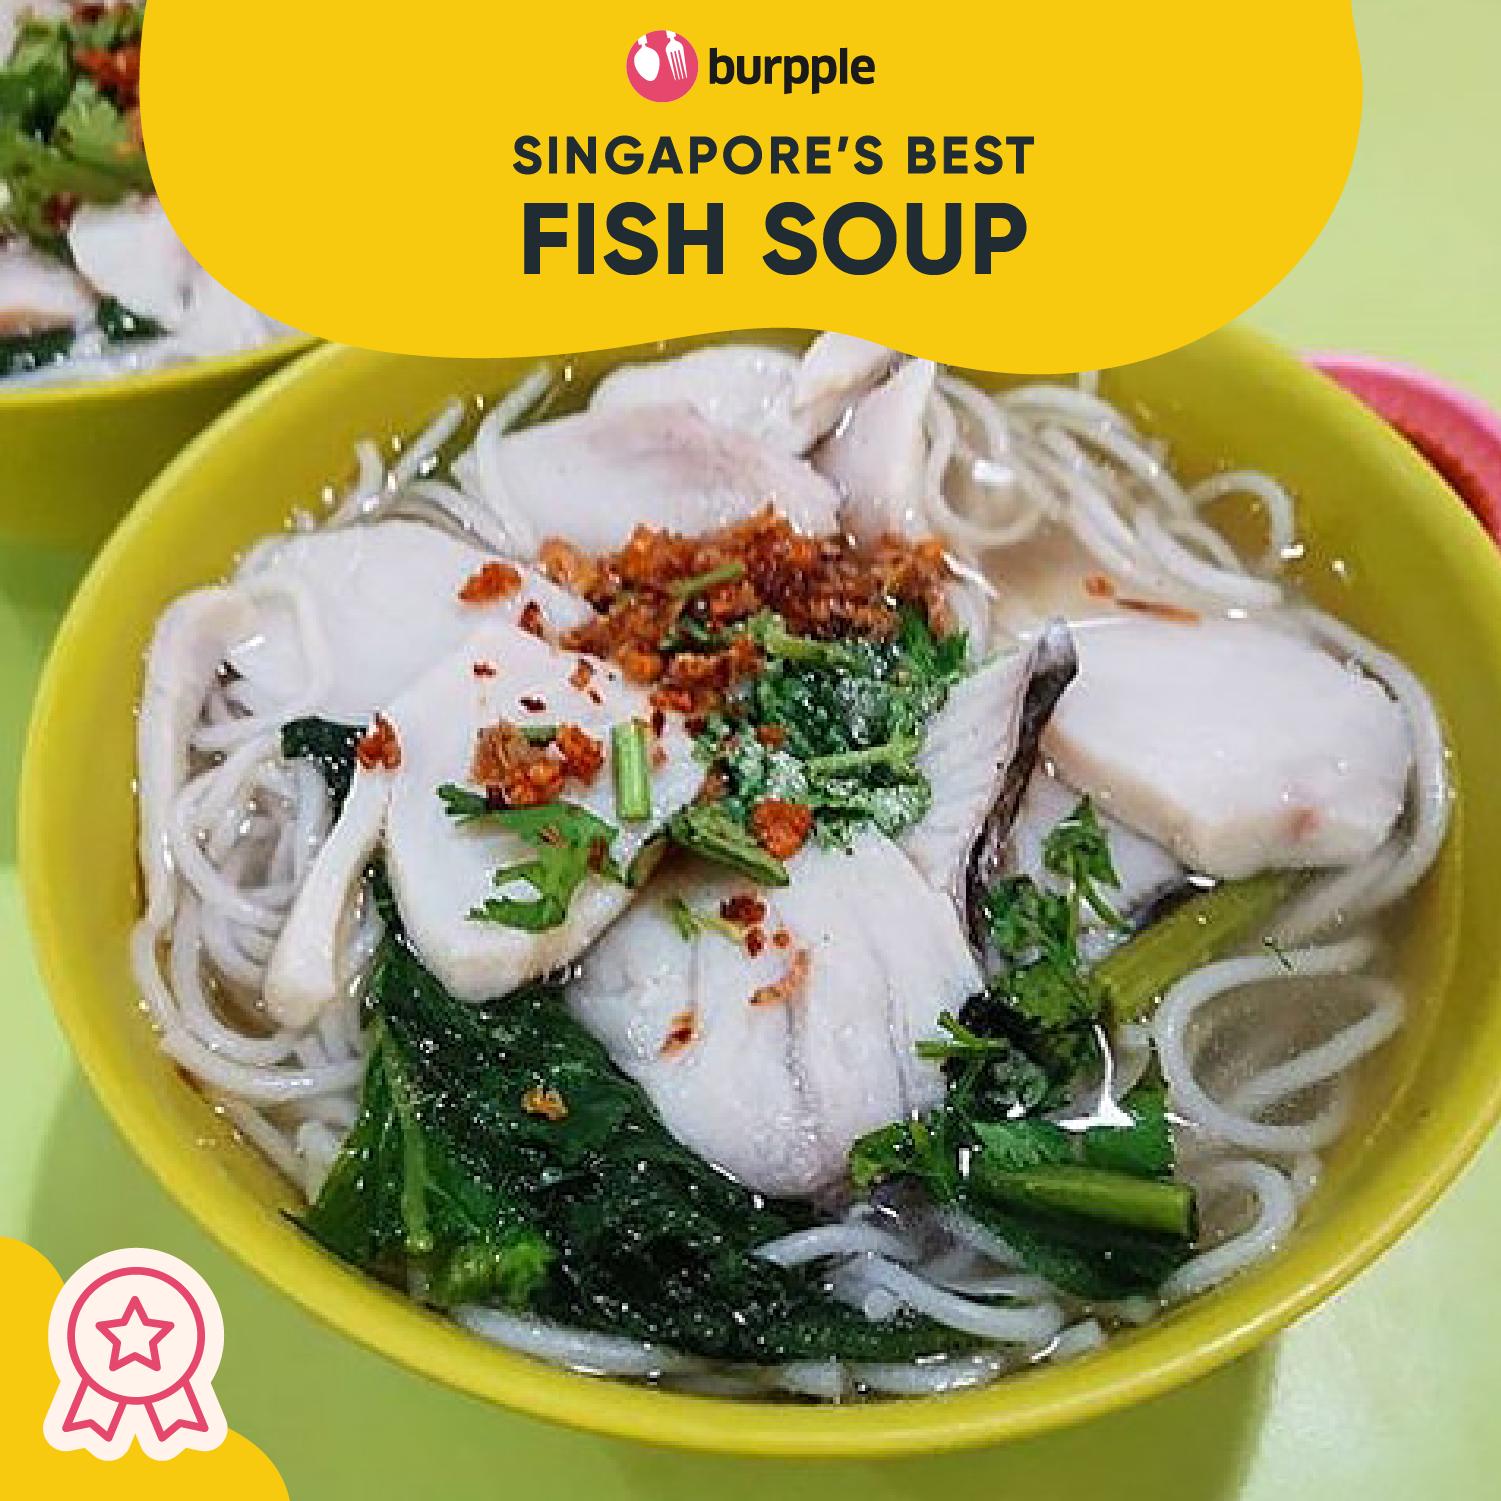 Best Fish Soup In Singapore Burpple Guides